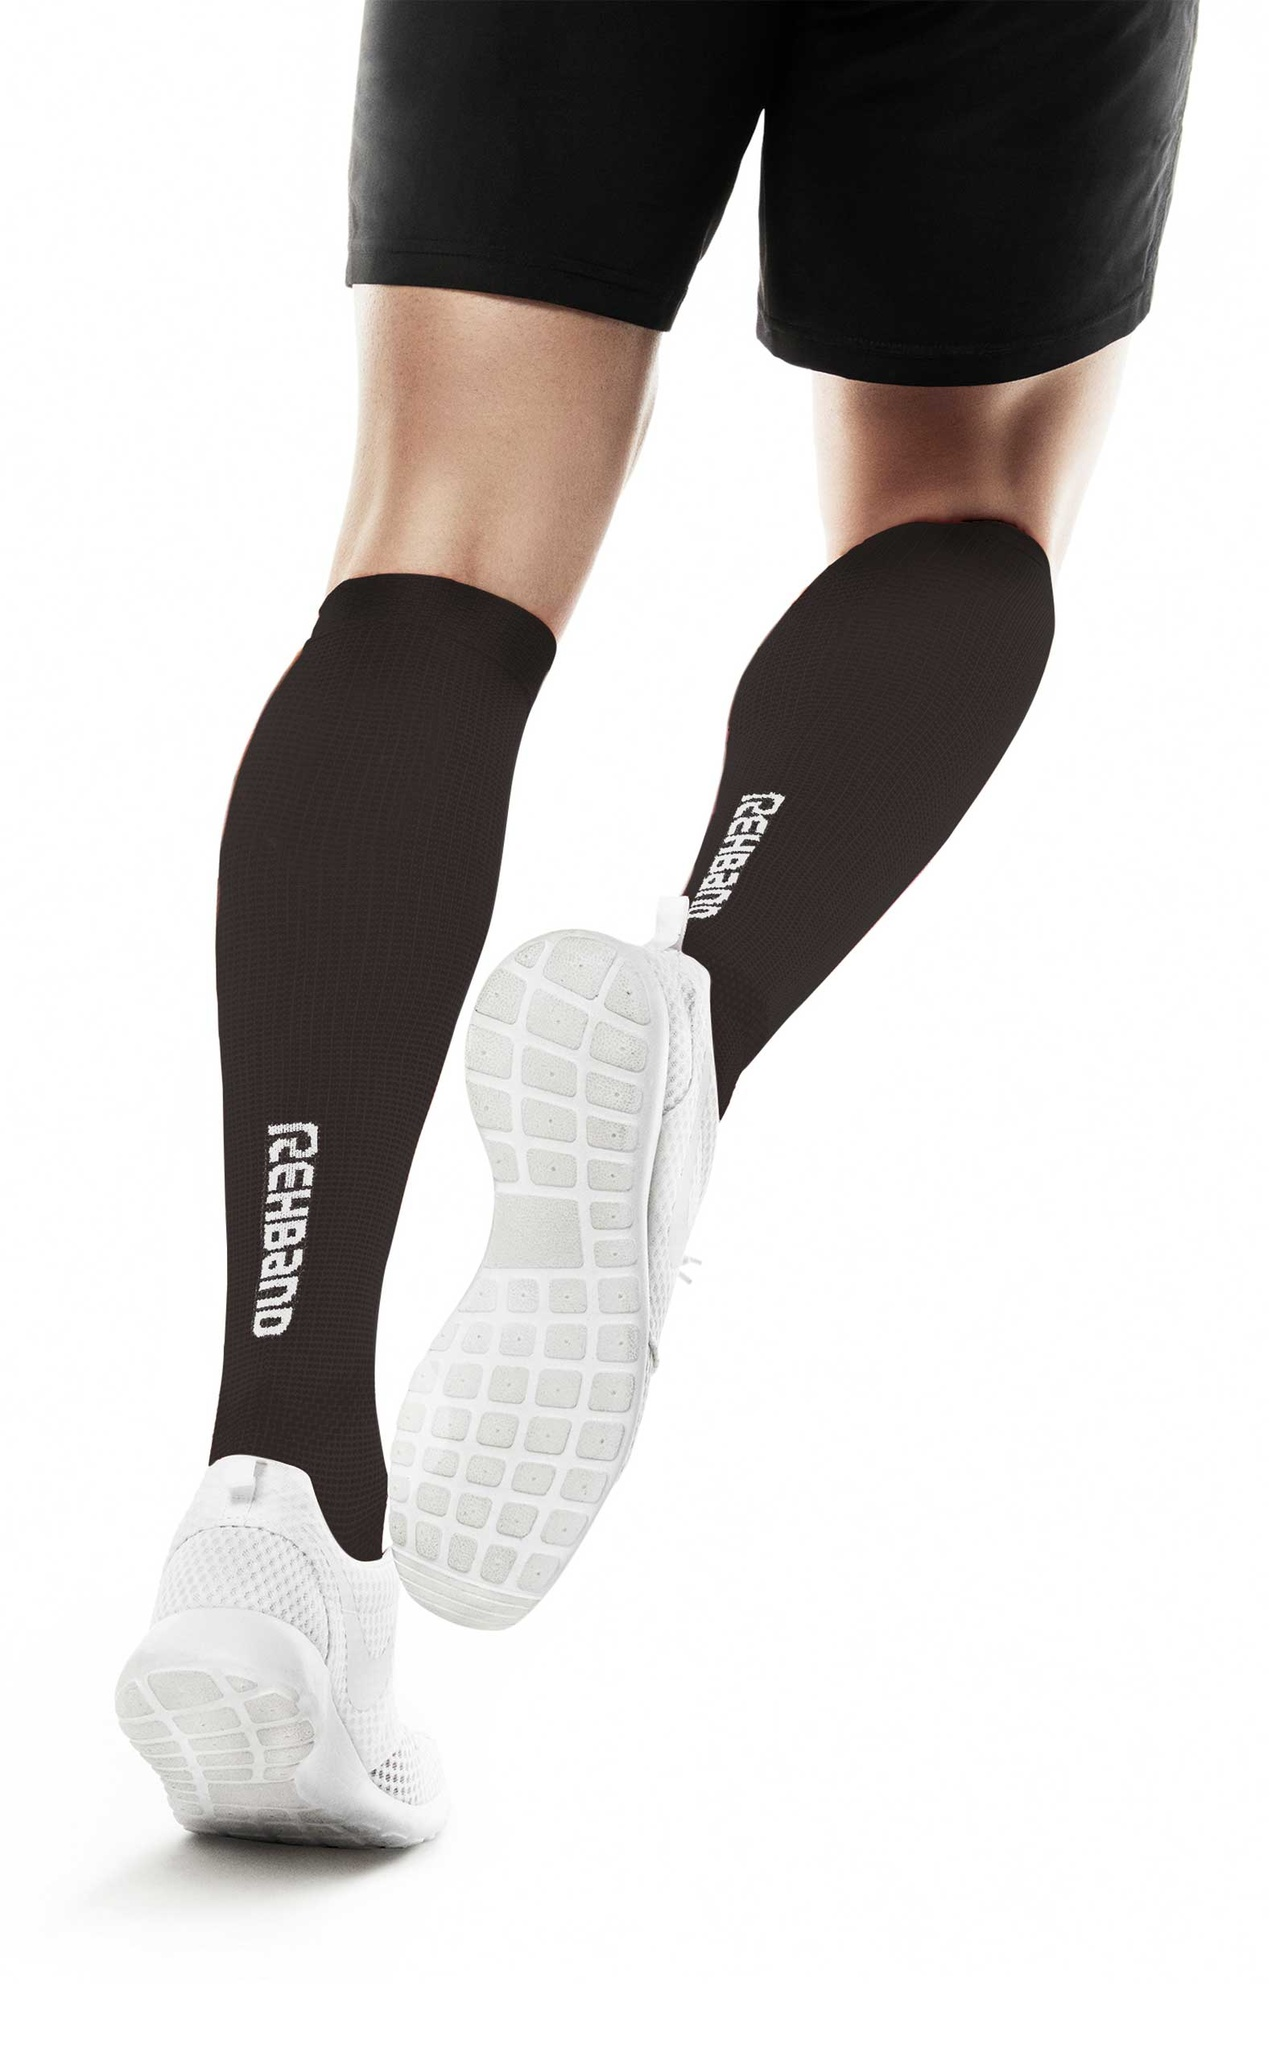 QD Compression Socks - Black - XL